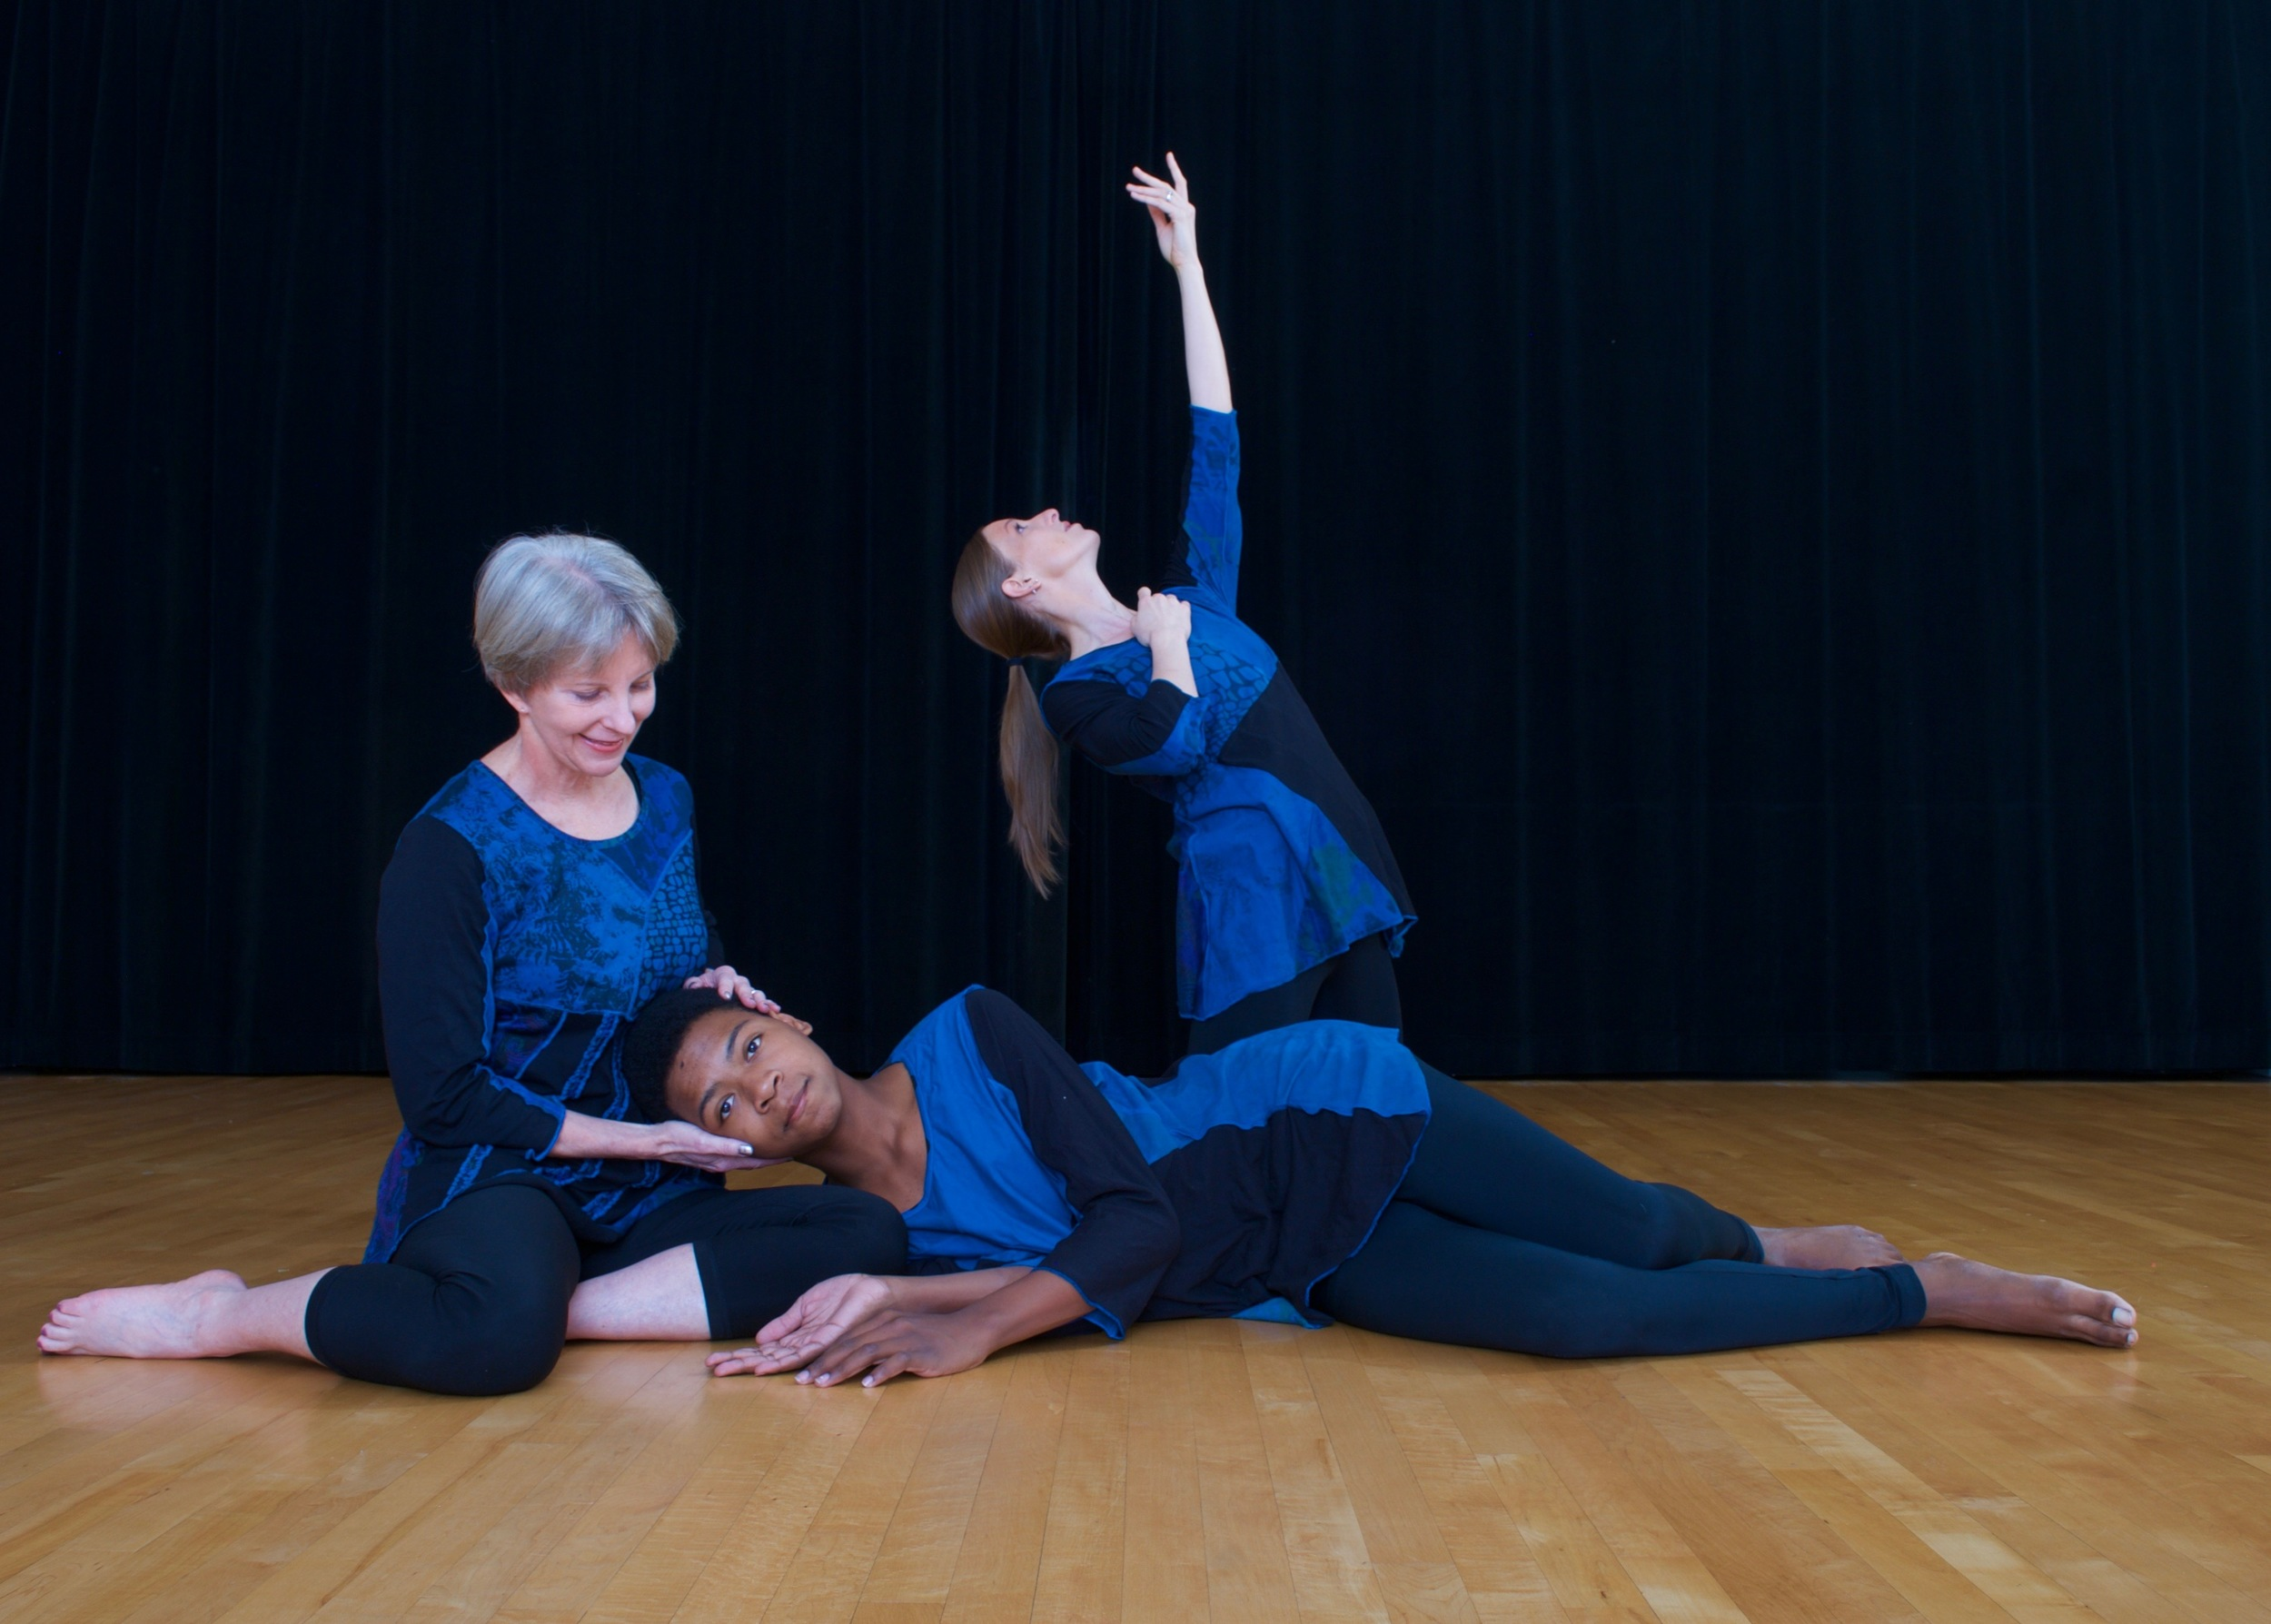 Dancers of all races and ages in a modern dance pose.